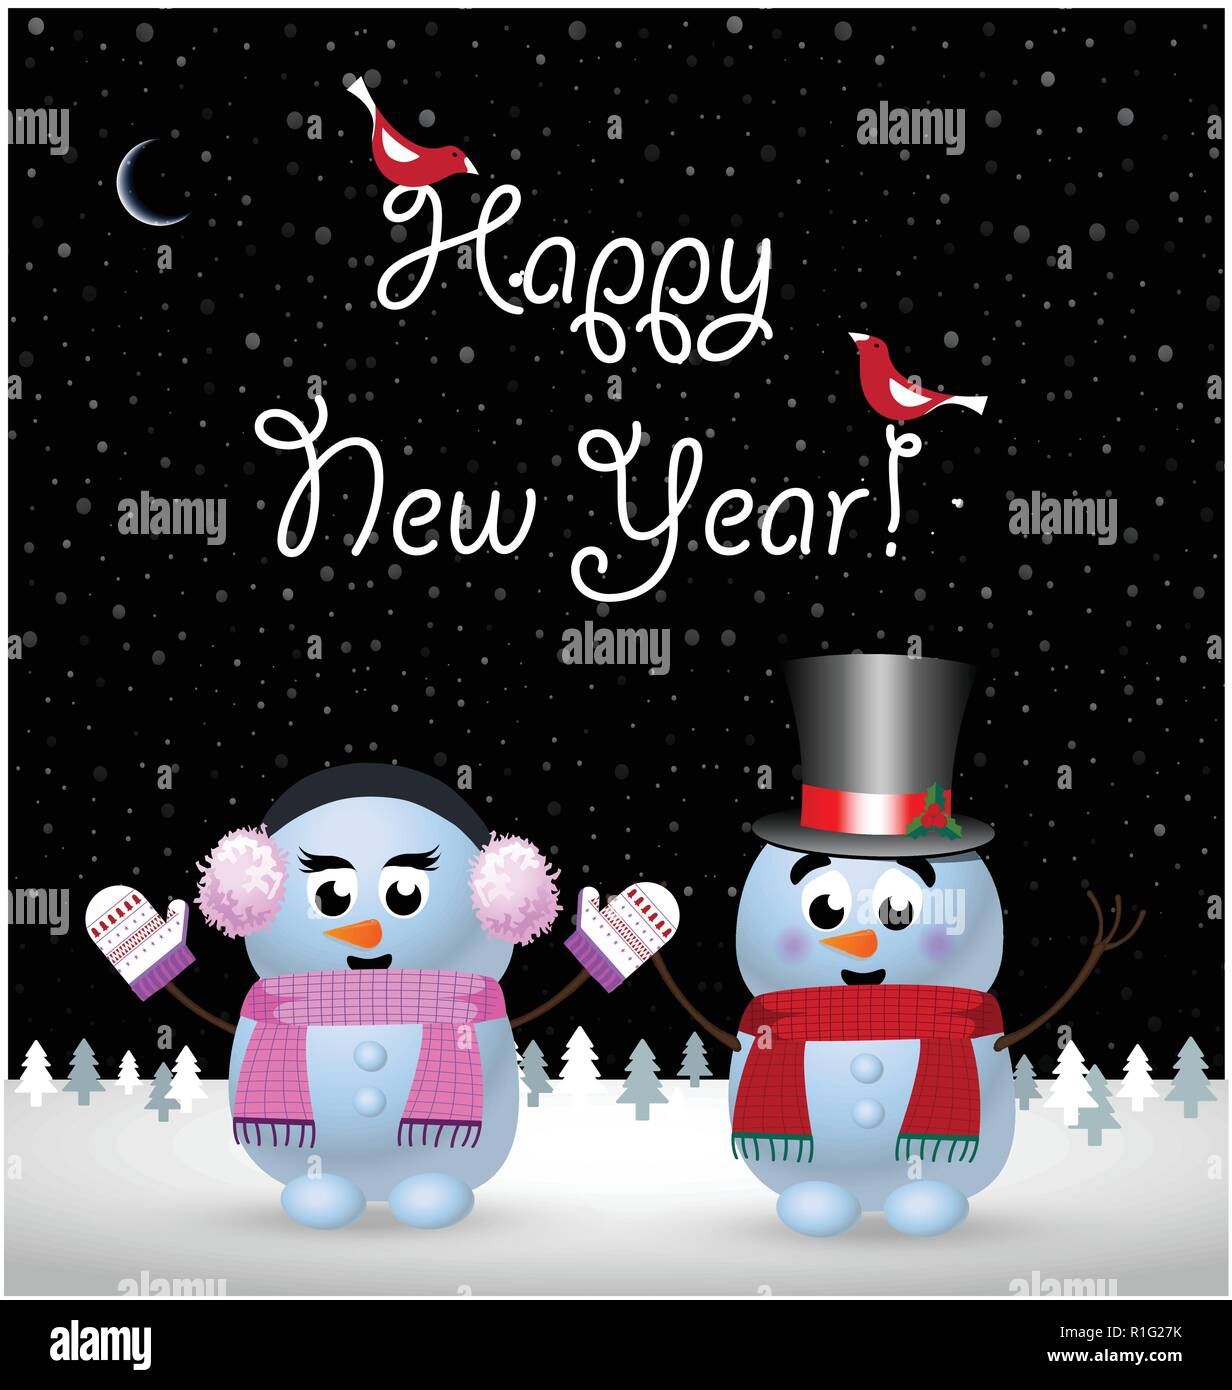 happy new year greeting card of cute little baby snowman and snowgirl holding hands on winter snowy night landscape background and hand drawn letterin